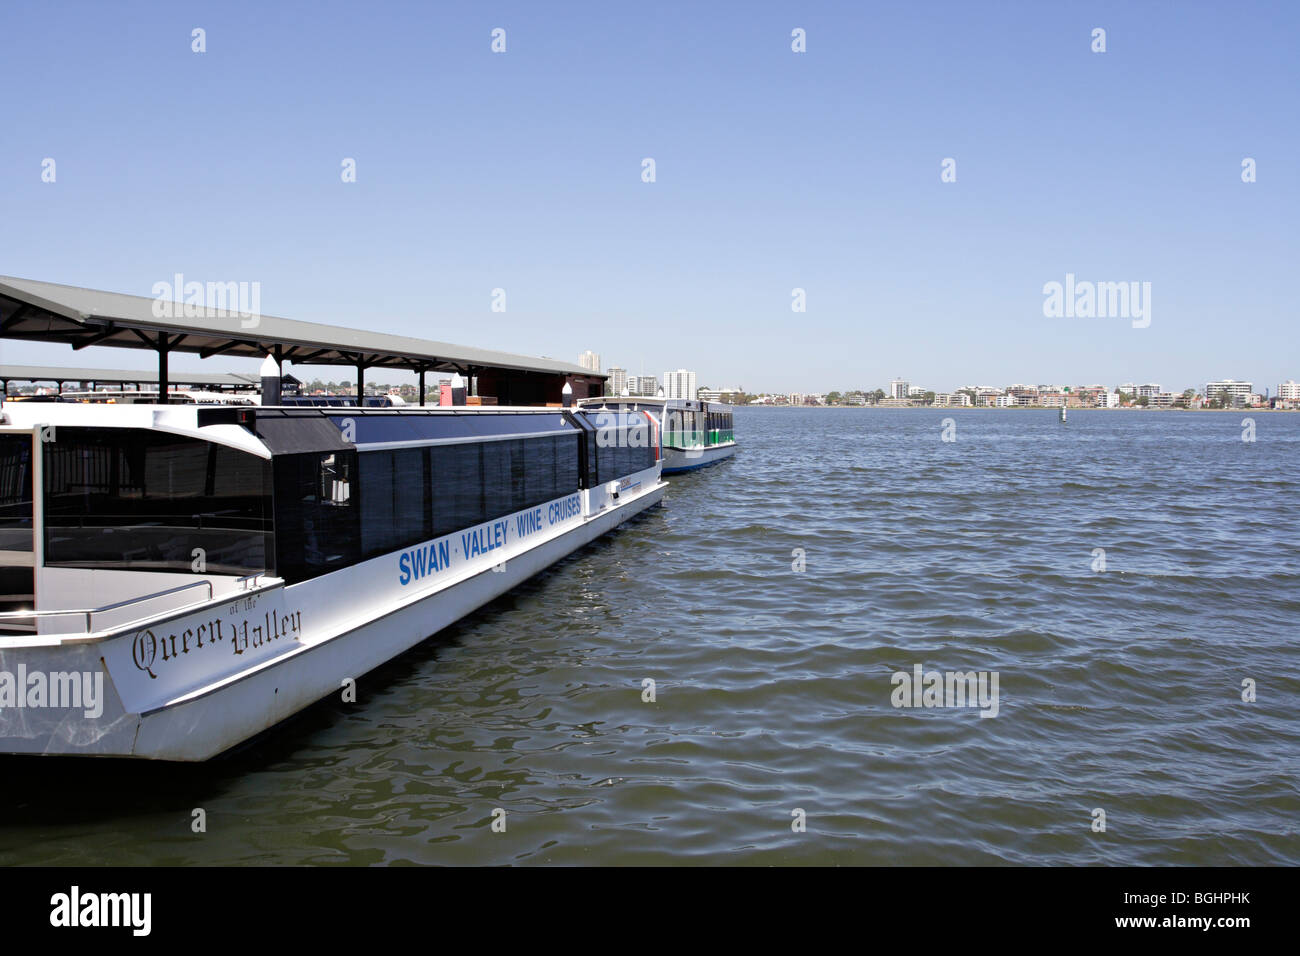 Cruise boat at Barrack Street Jetty in Perth, Western Australia. - Stock Image